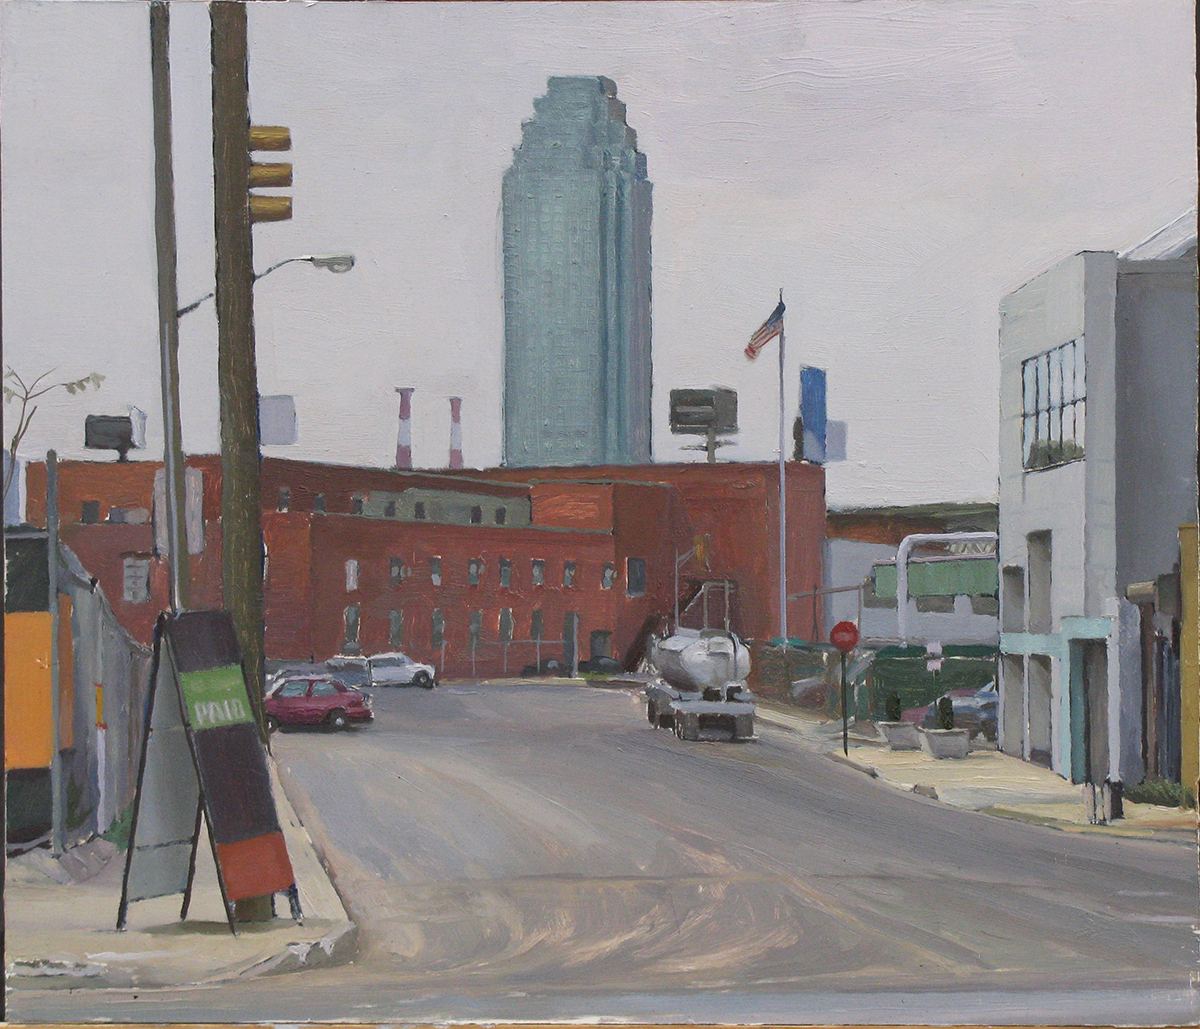 "M-29: GREENPOINT AVE. and KINGSLAND AVE., BROOKLYN oil on panel 14 x 16"" 2009"